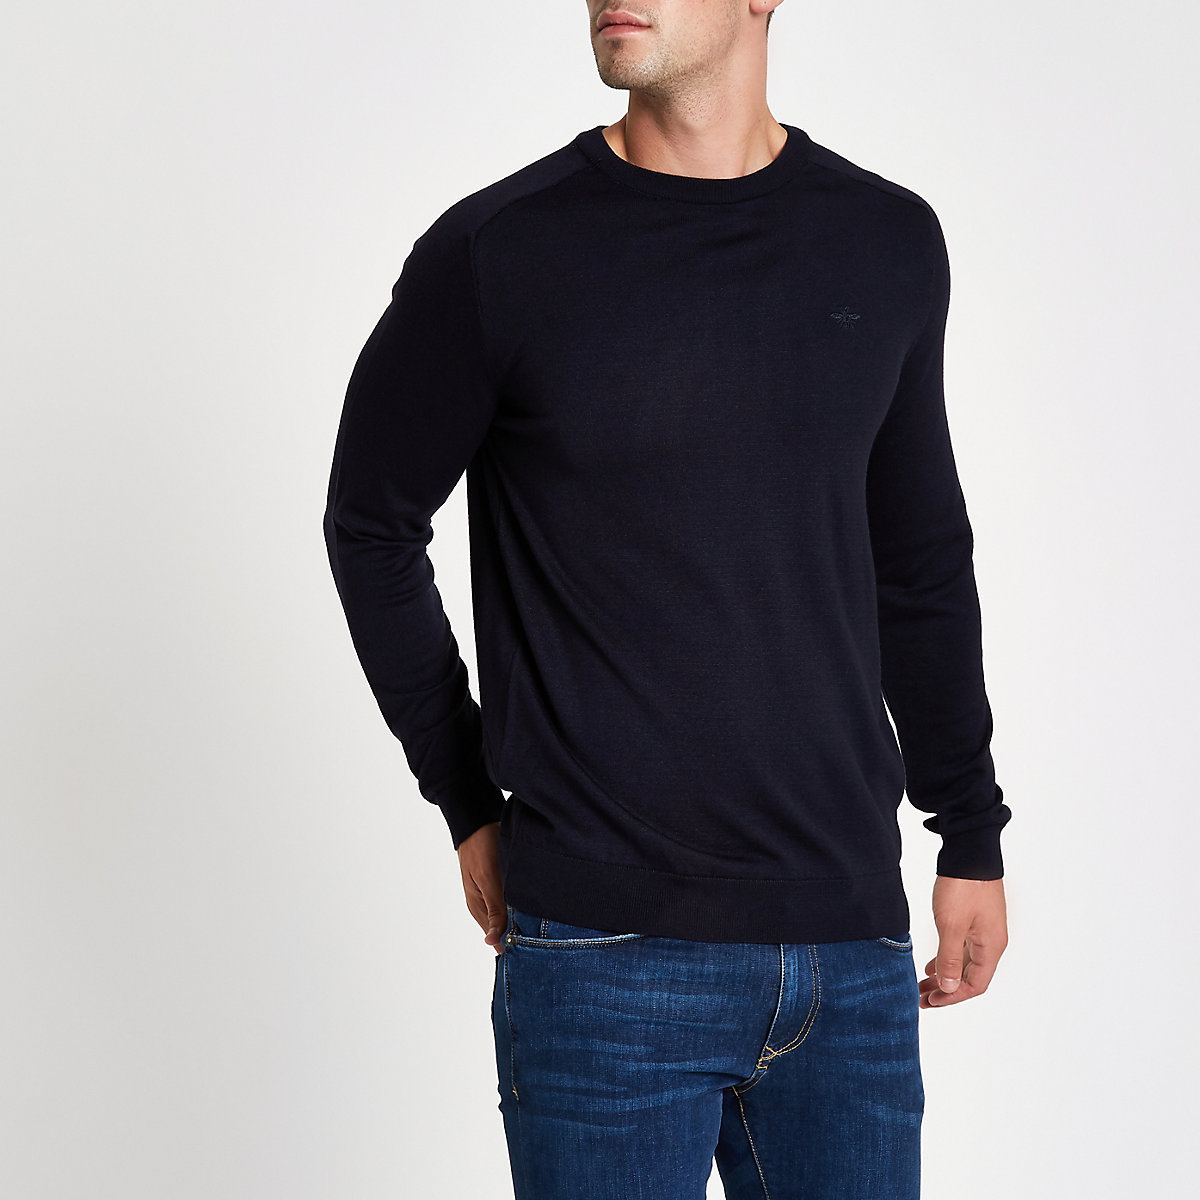 Navy wasp embroidered slim fit jumper